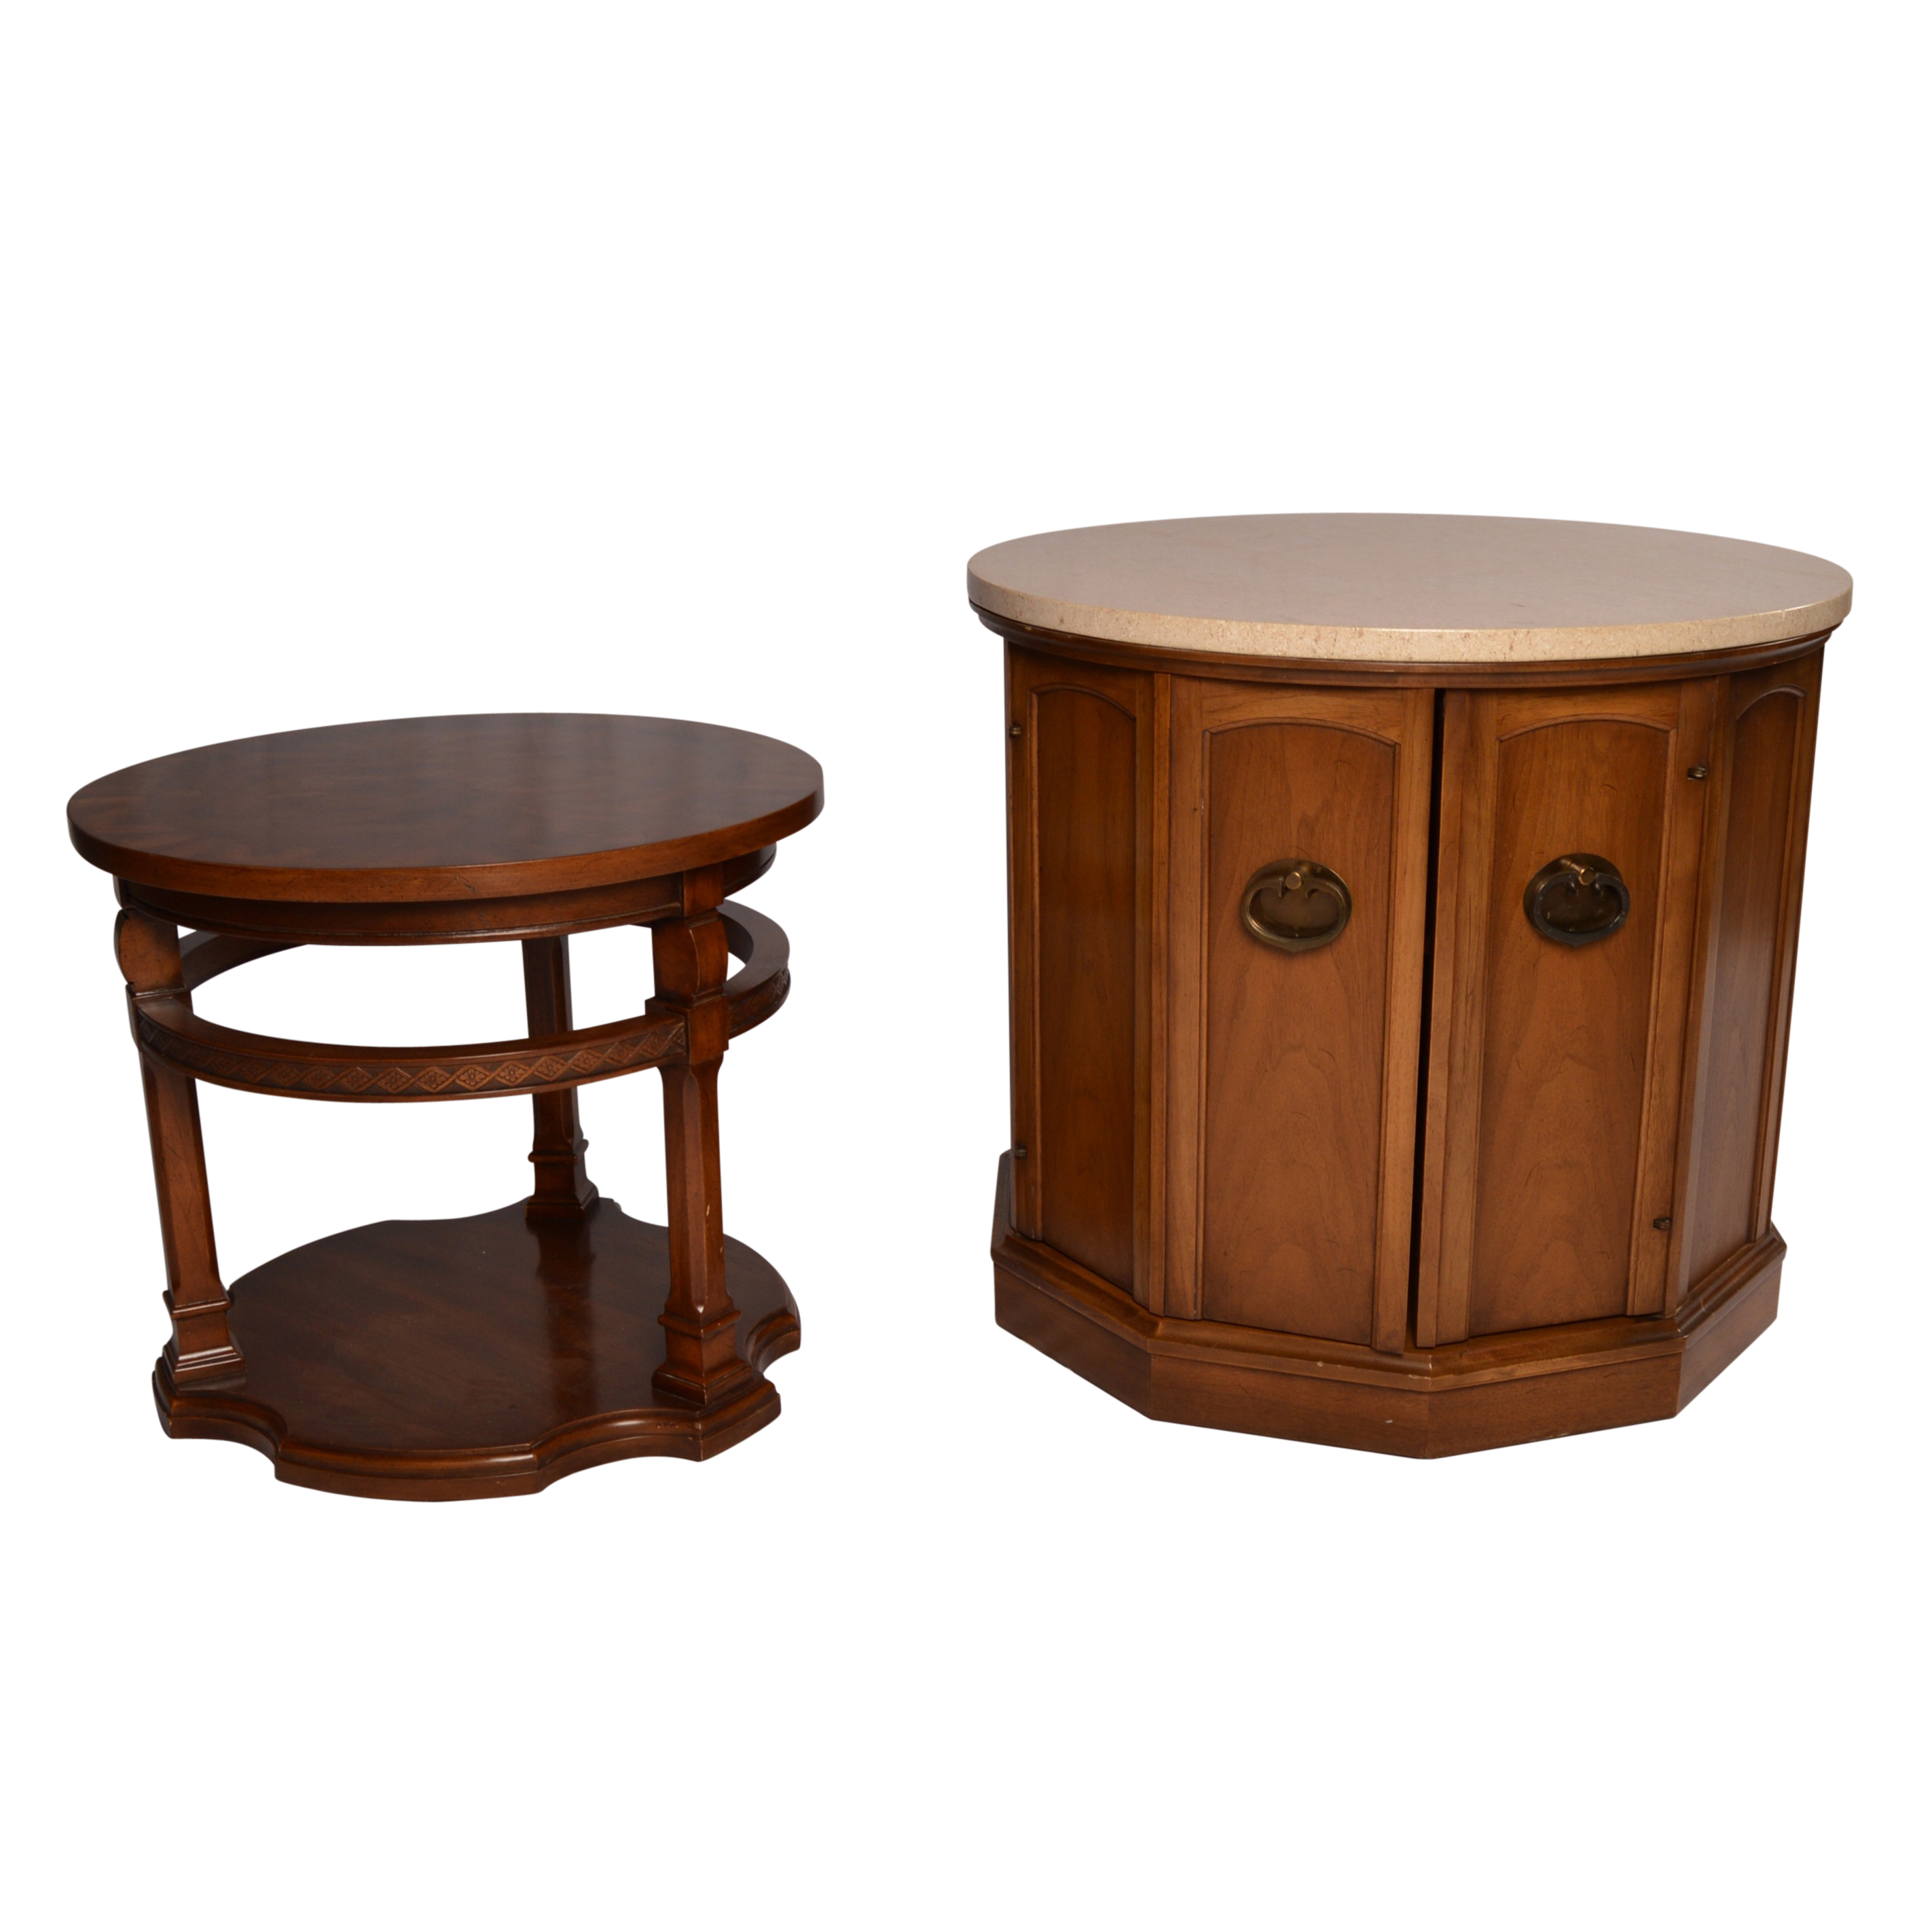 MidCentury End Tables Featuring Weiman EBTH